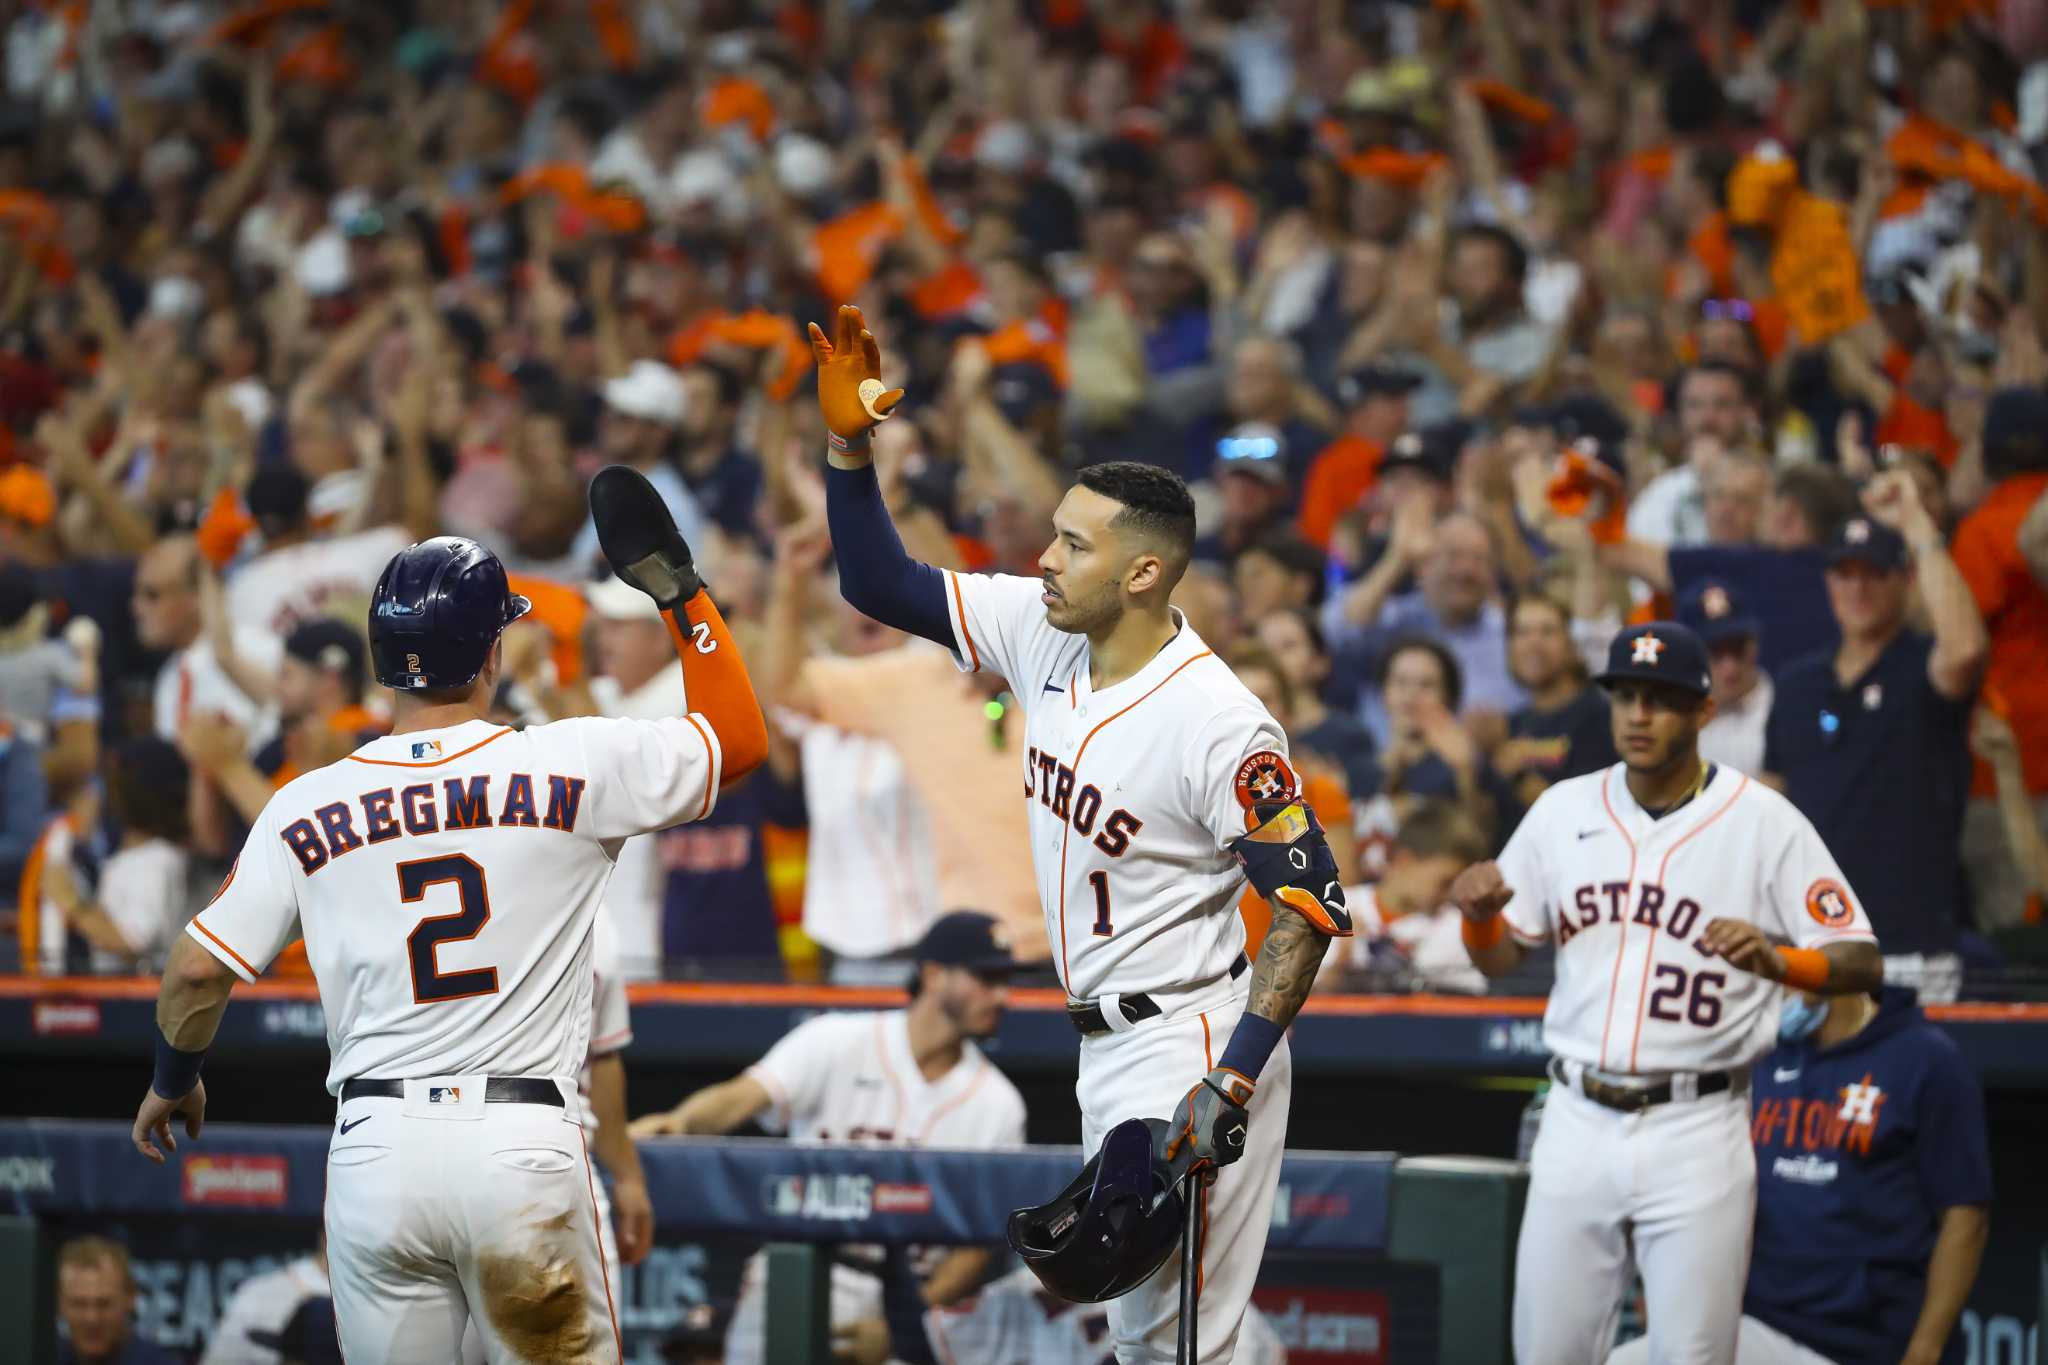 Gameday Live: White Sox at Astros - Game 1 - mySA